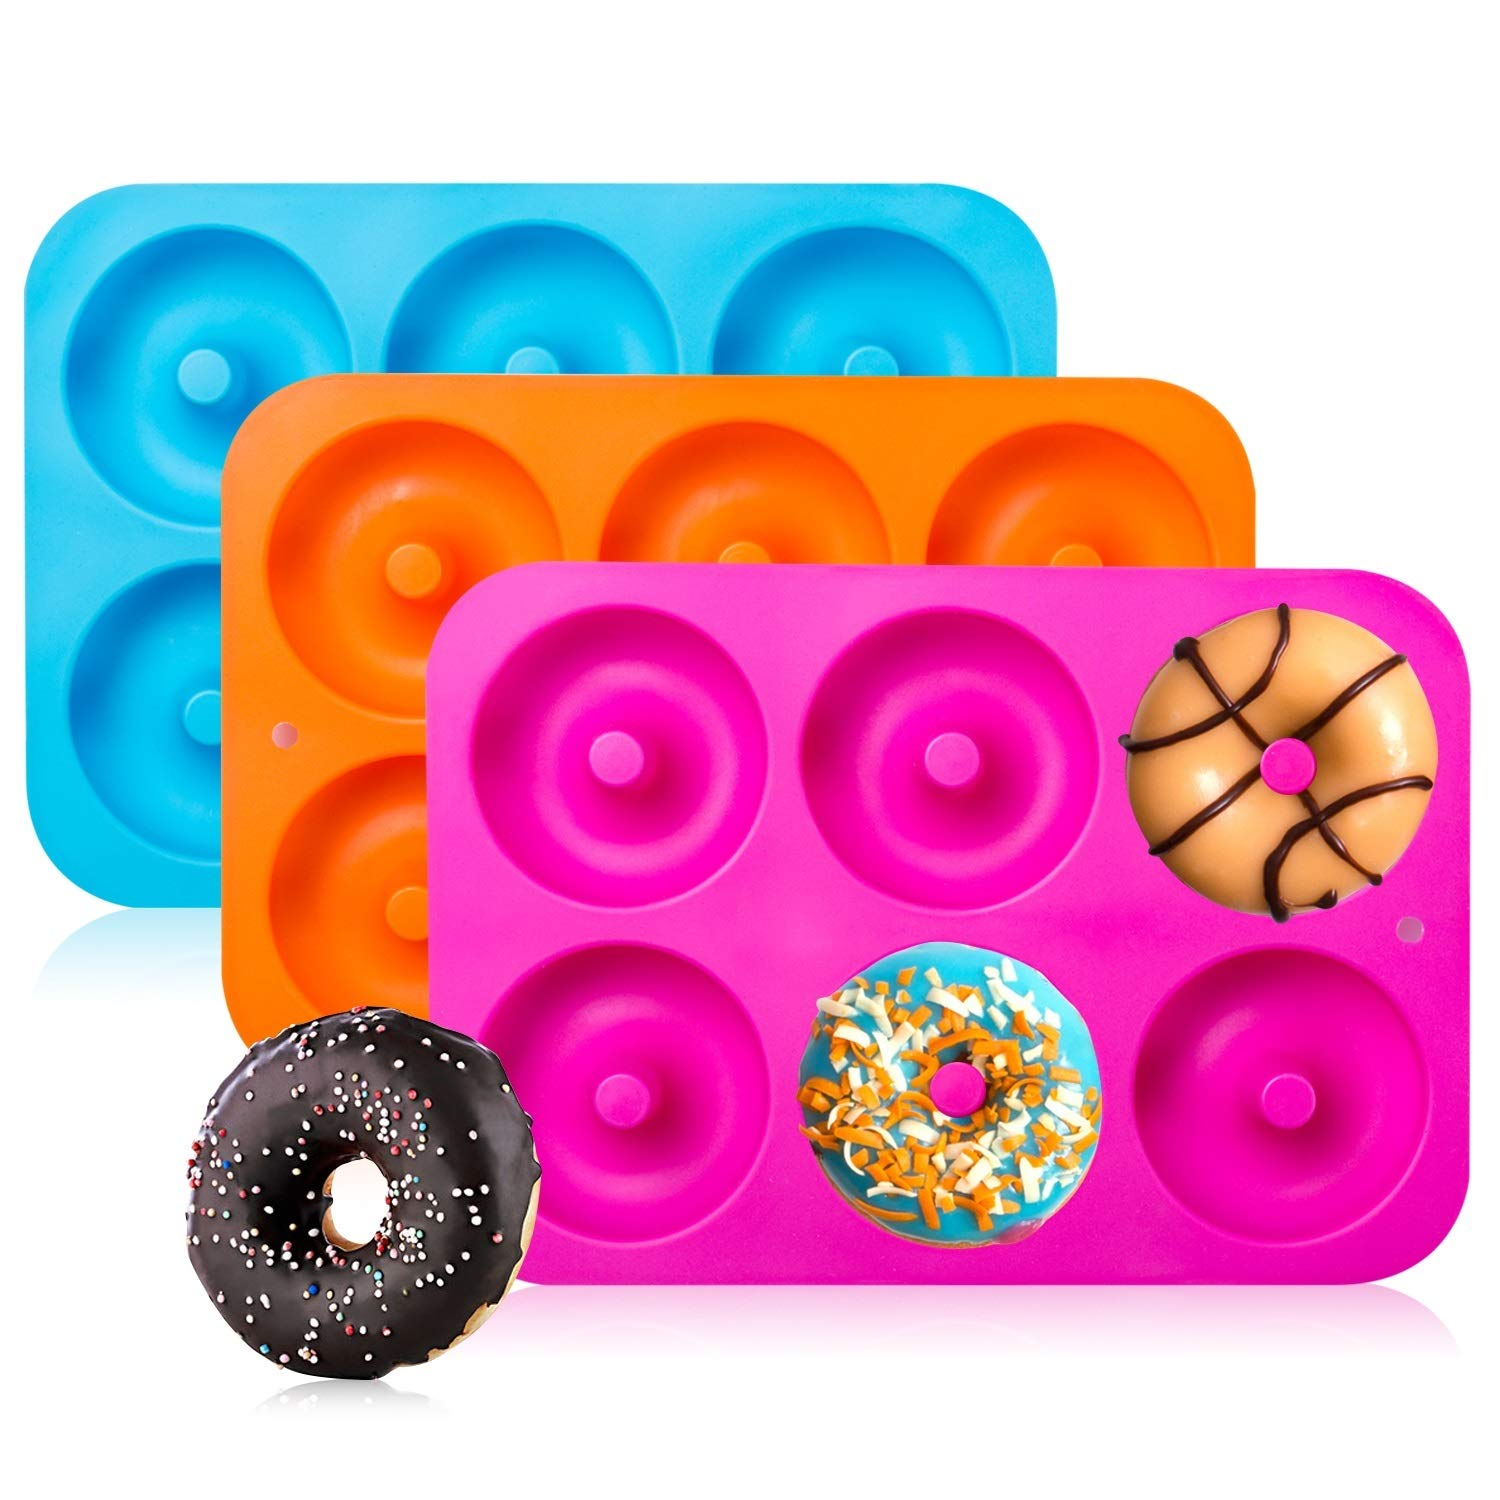 3 Colors BAKHUK 3Pack 4 Donut Baking Pan Full Size Non Stick Silicone Molds Donut Trays Donut Pans